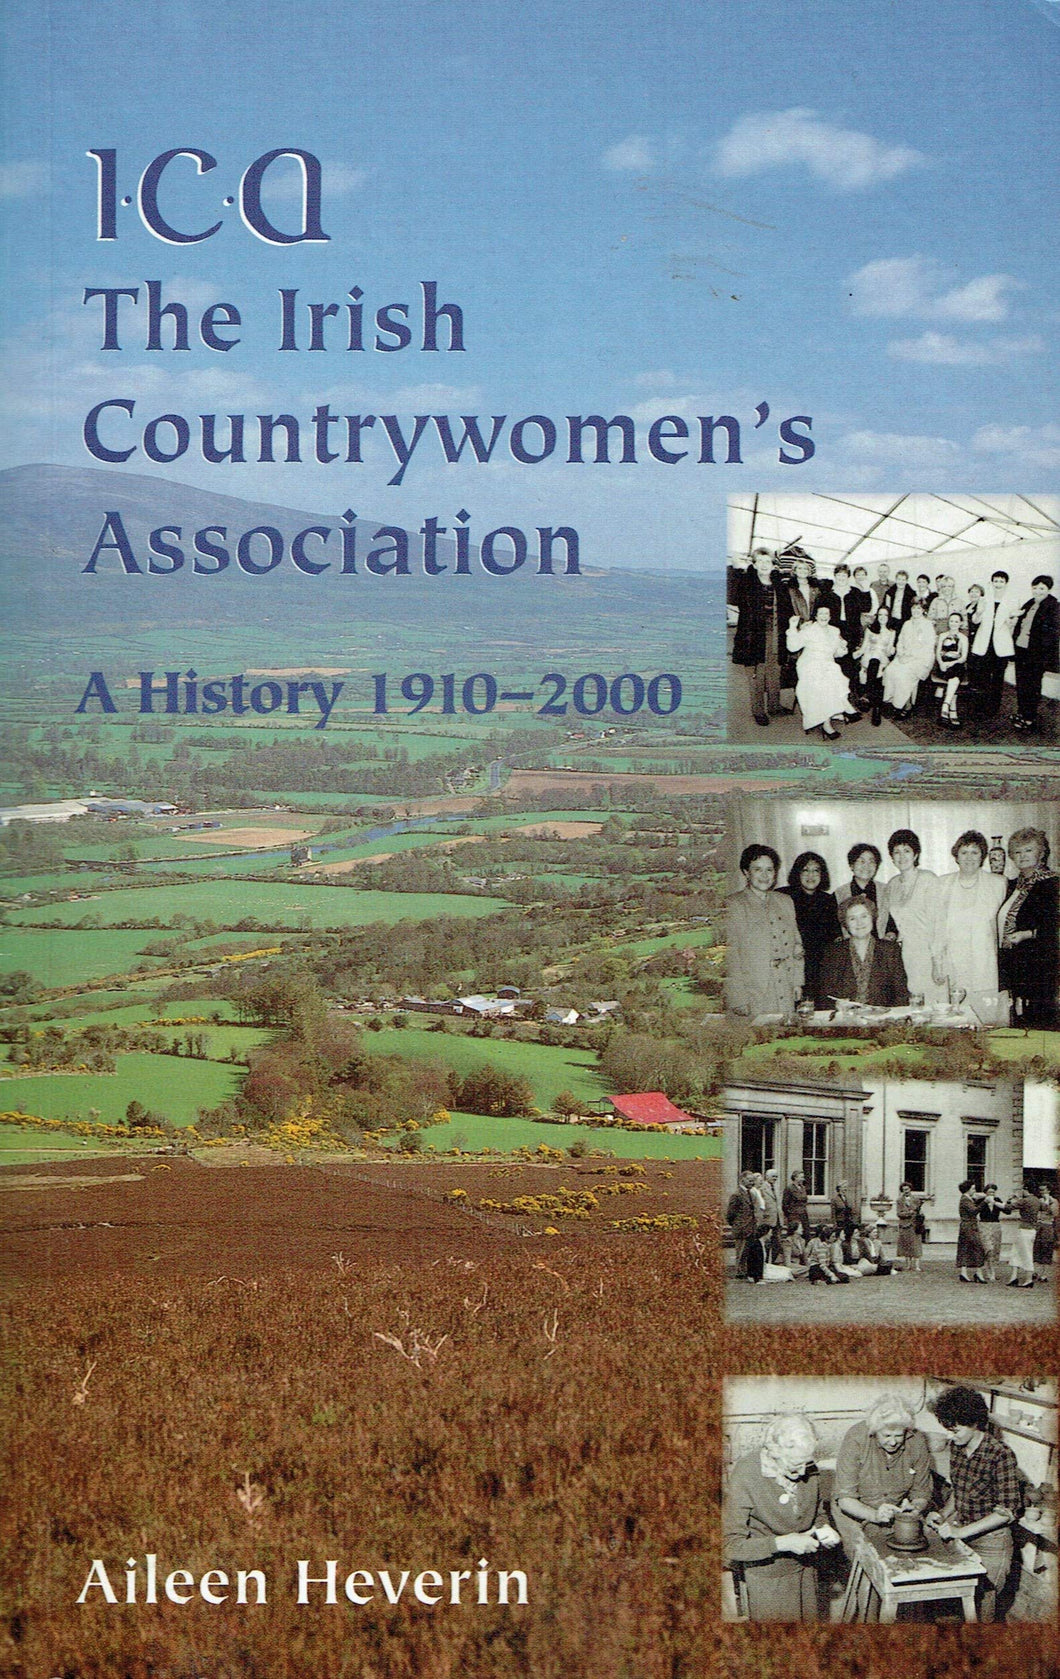 The Irish Country Women's Association: A History, 1910-2000